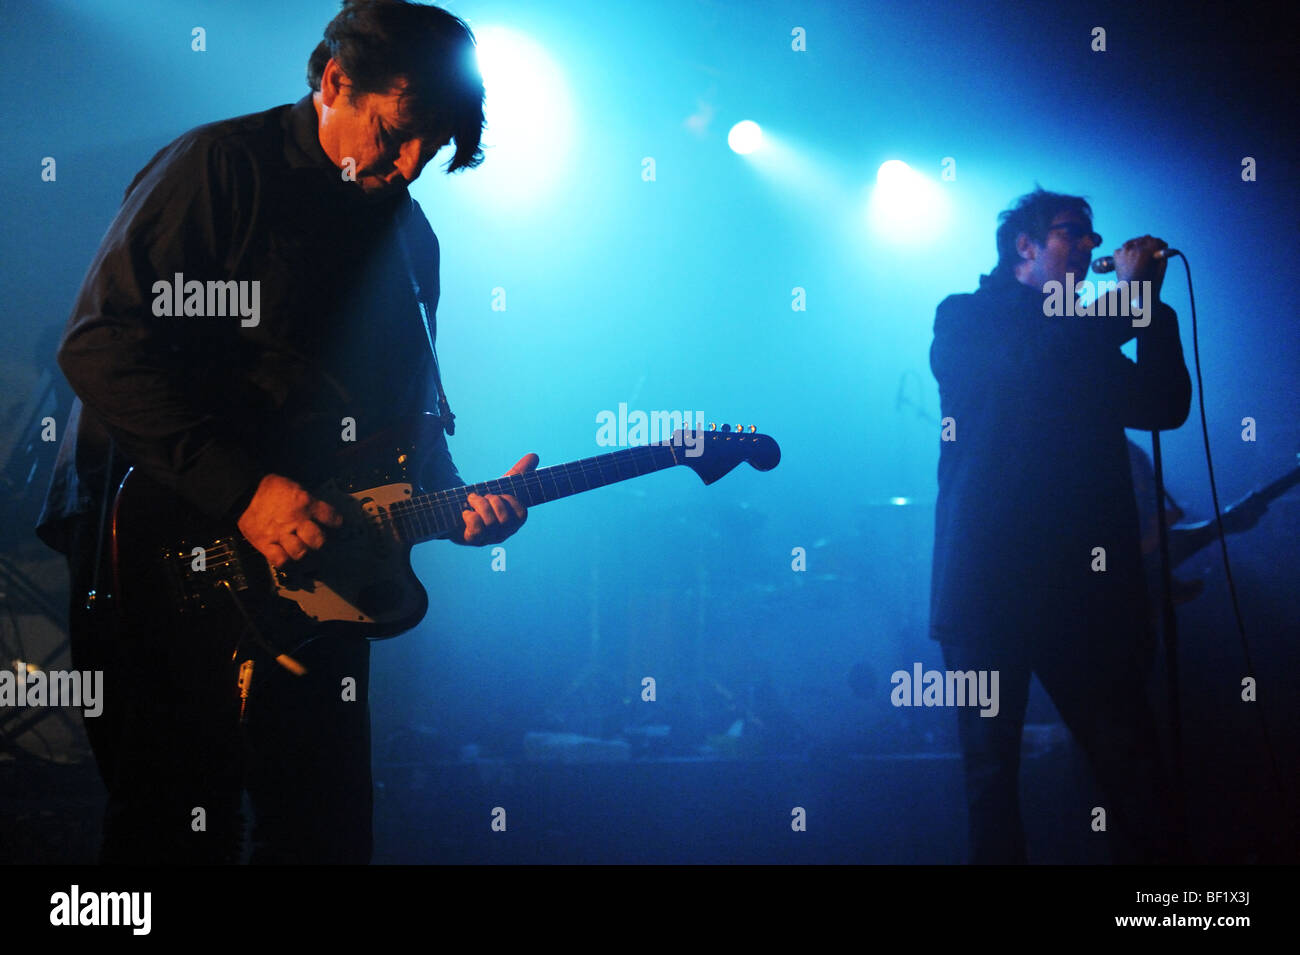 Rock band Echo and the Bunnymen perform at Wolverhampton, 12th October 2009. Will Sargeant (guitar) and Ian McCulloch. - Stock Image